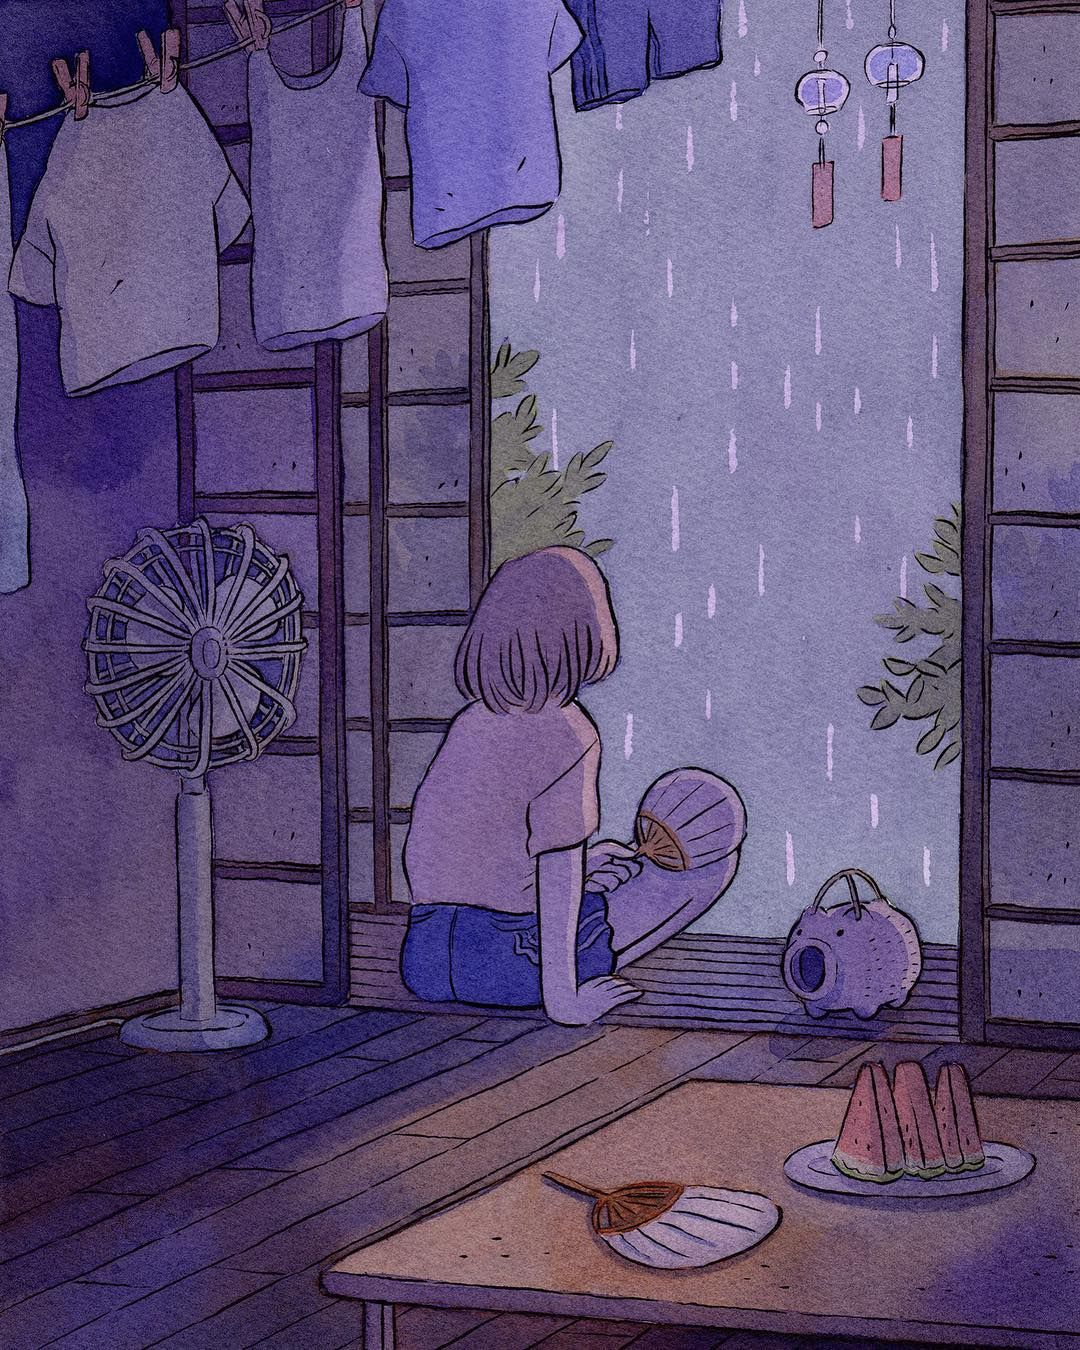 Heikala On Instagram Summer Rain This Illustration Is Available As A Print In My Shop Link In Bio Colouredink Aesthetic Anime Aesthetic Art Cute Art